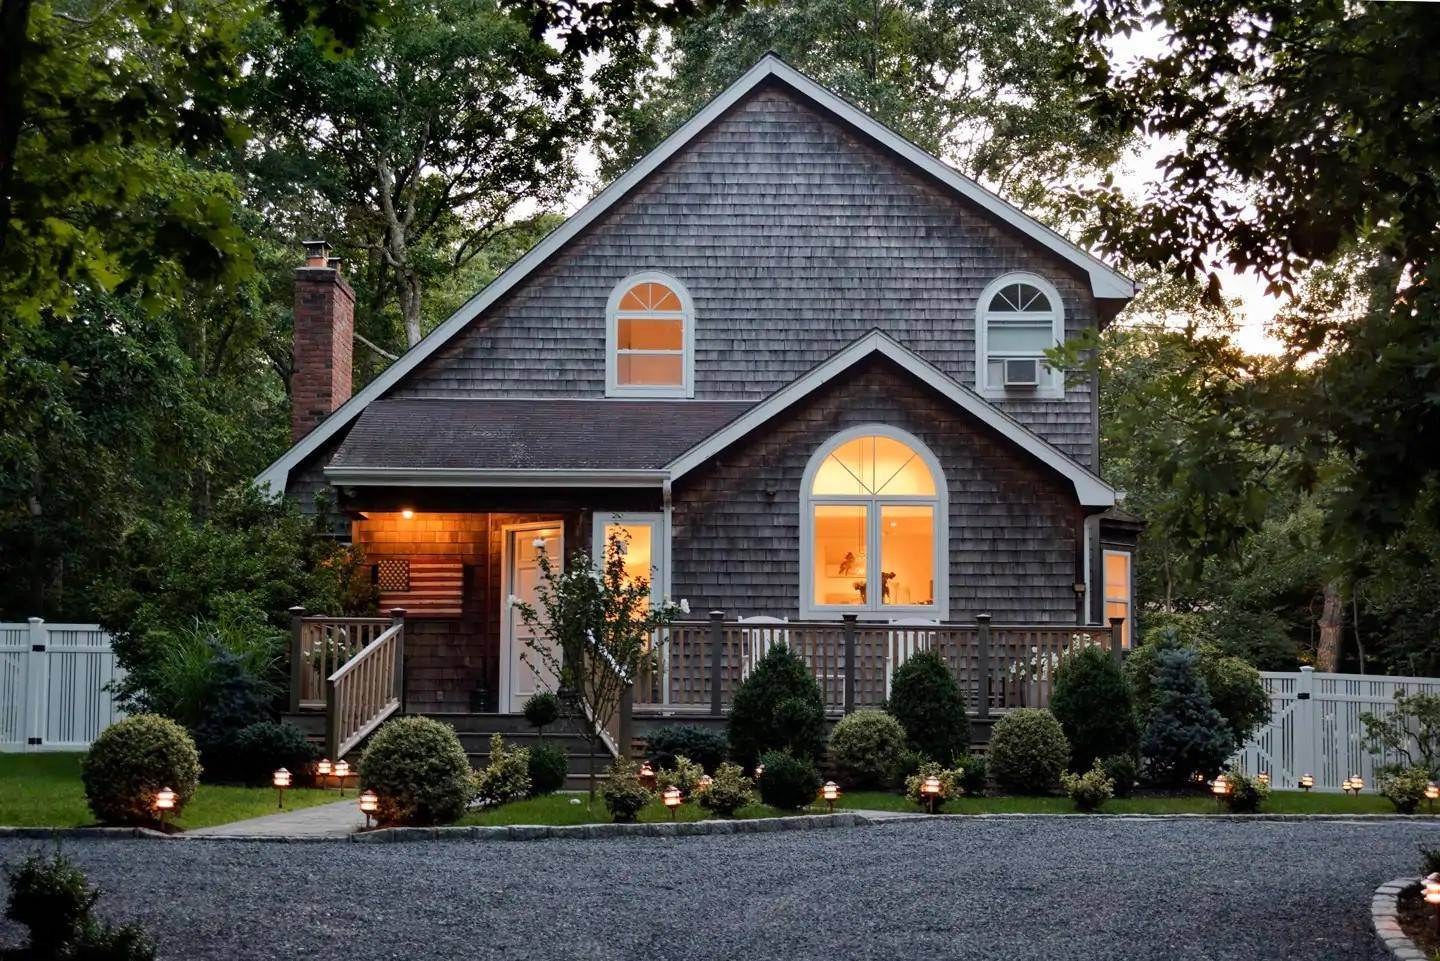 Single Family Home at East Hampton - Close To Bays East Hampton, NY 11937